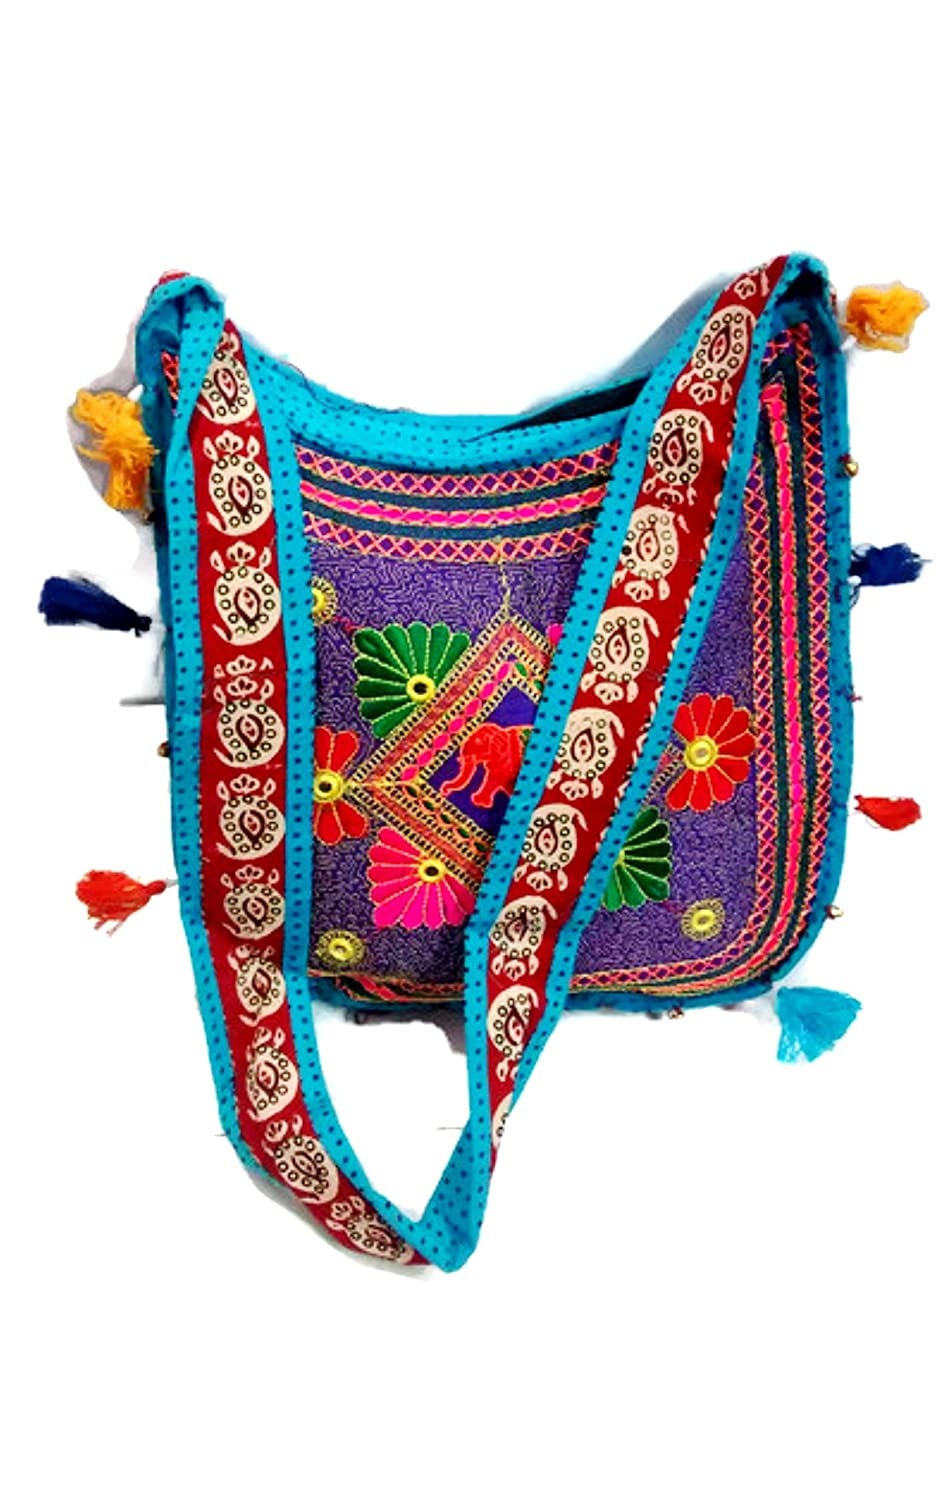 Stylish Fashionable Ethnic Handmade Women Indian metal clutch Bag Antique Bags Metal Bags Metal Frame Bags